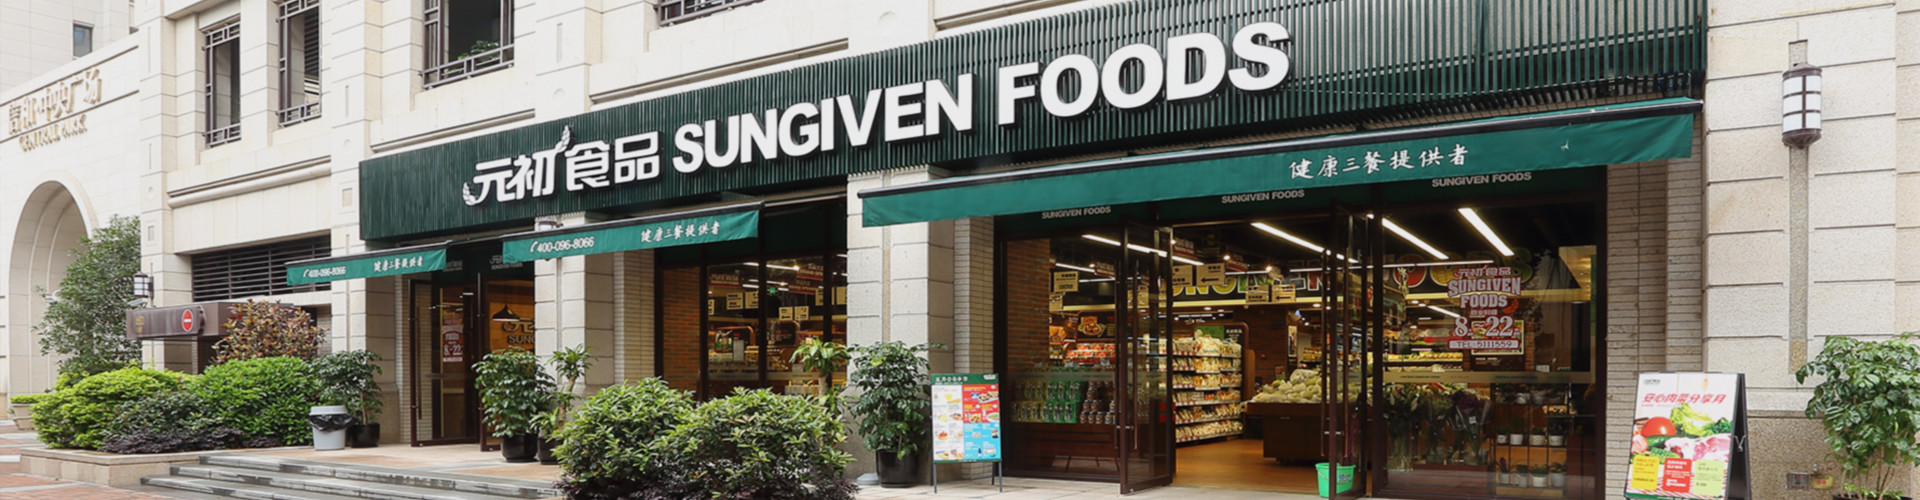 Image: Sungiven Foods